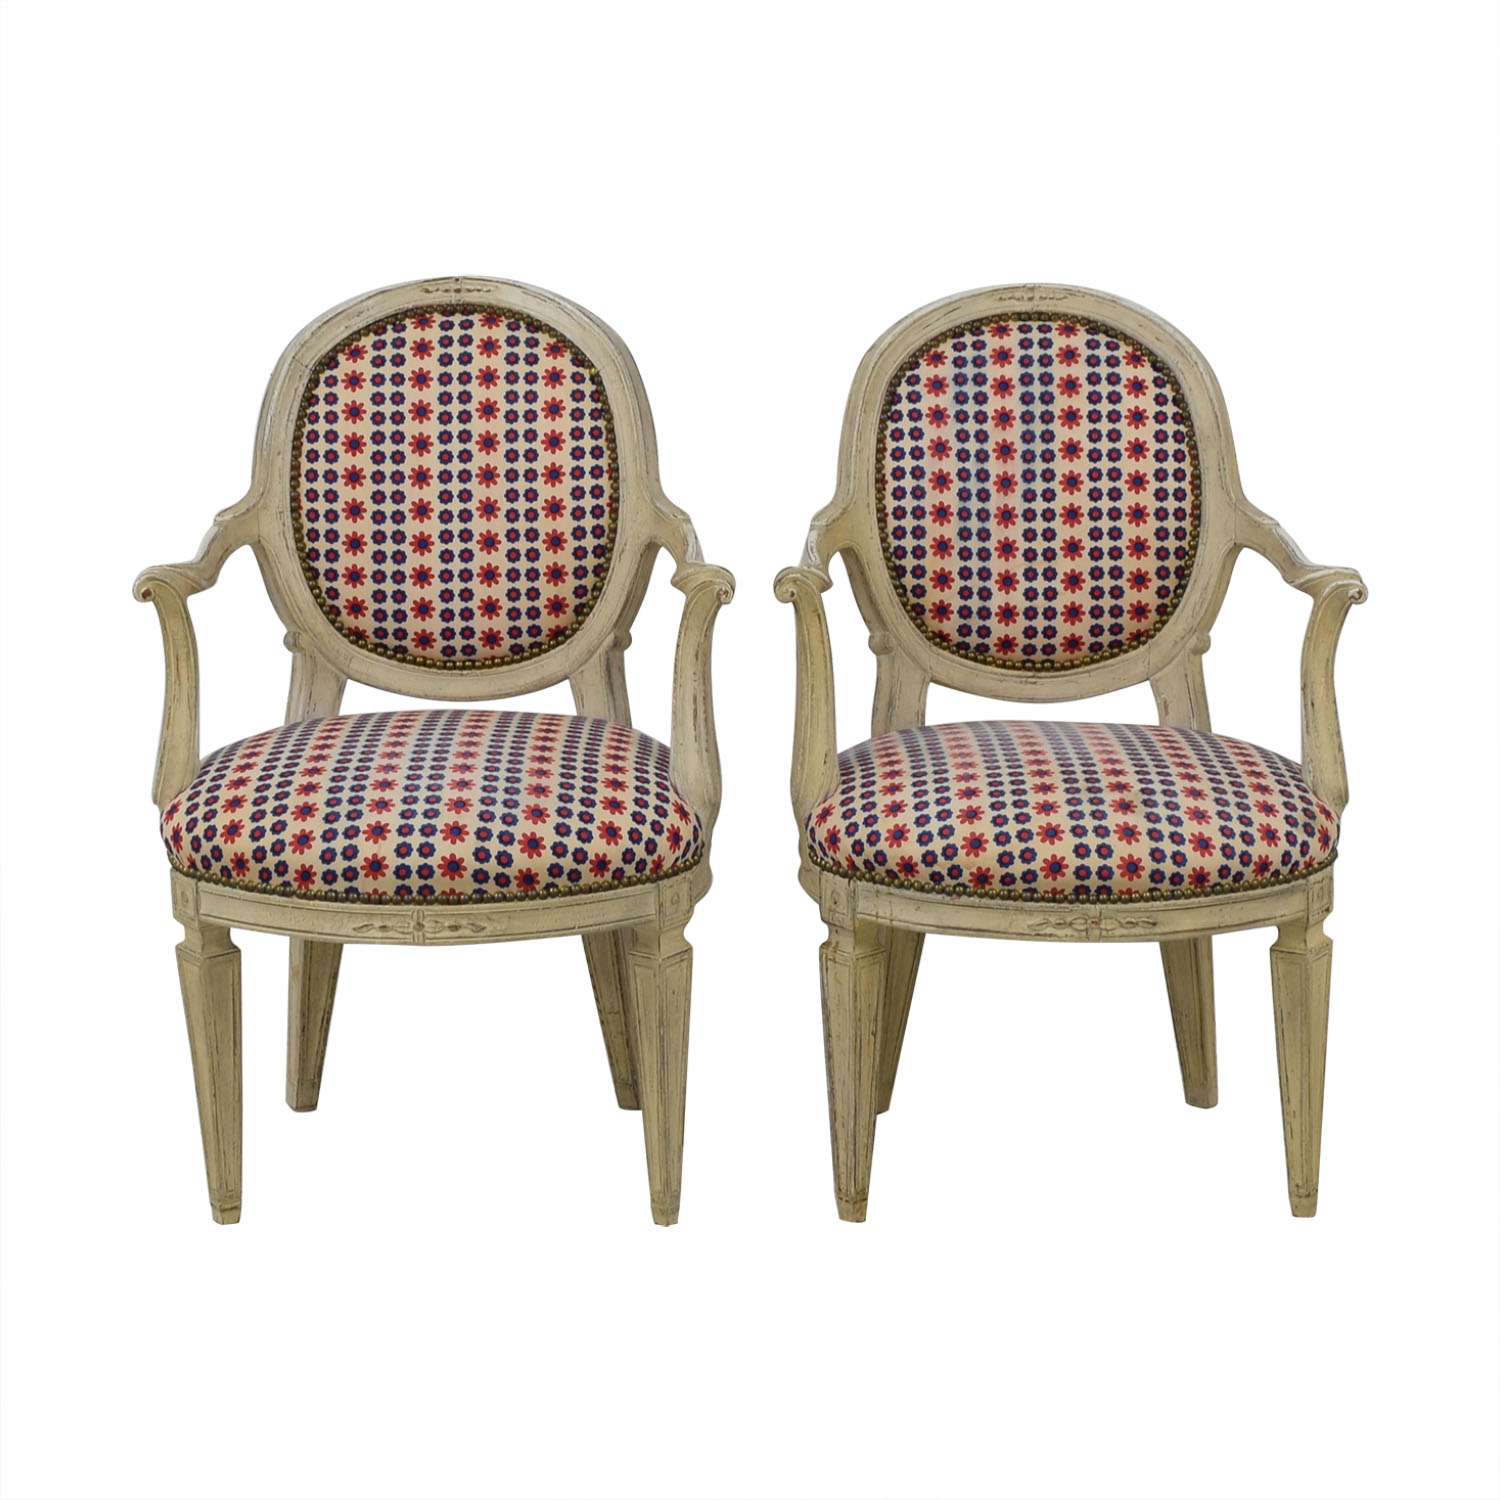 French Upholstered Chairs dimensions